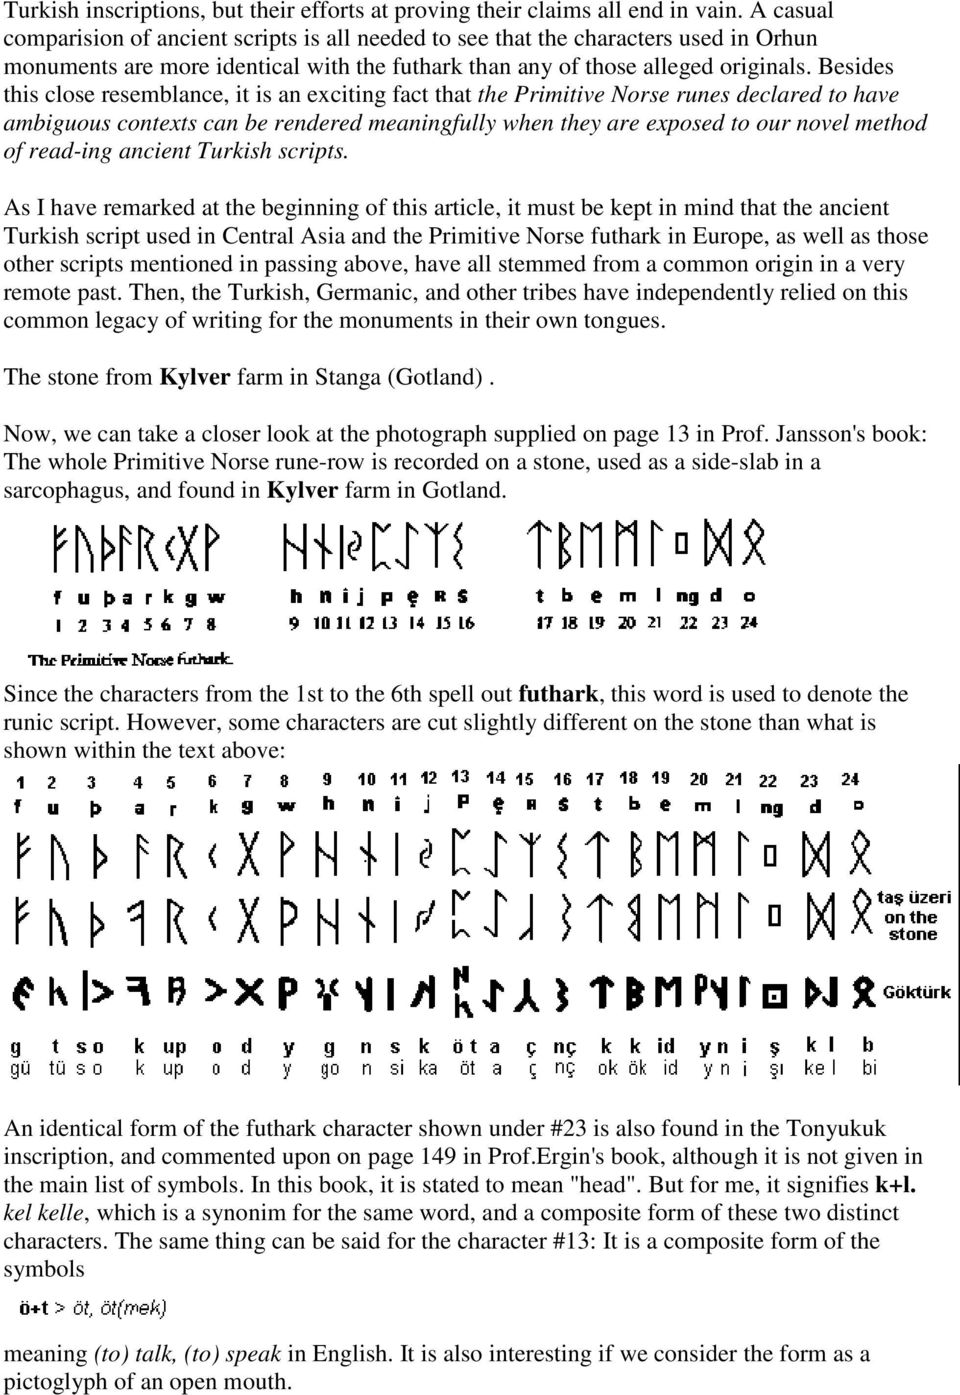 Besides this close resemblance, it is an exciting fact that the Primitive Norse runes declared to have ambiguous contexts can be rendered meaningfully when they are exposed to our novel method of